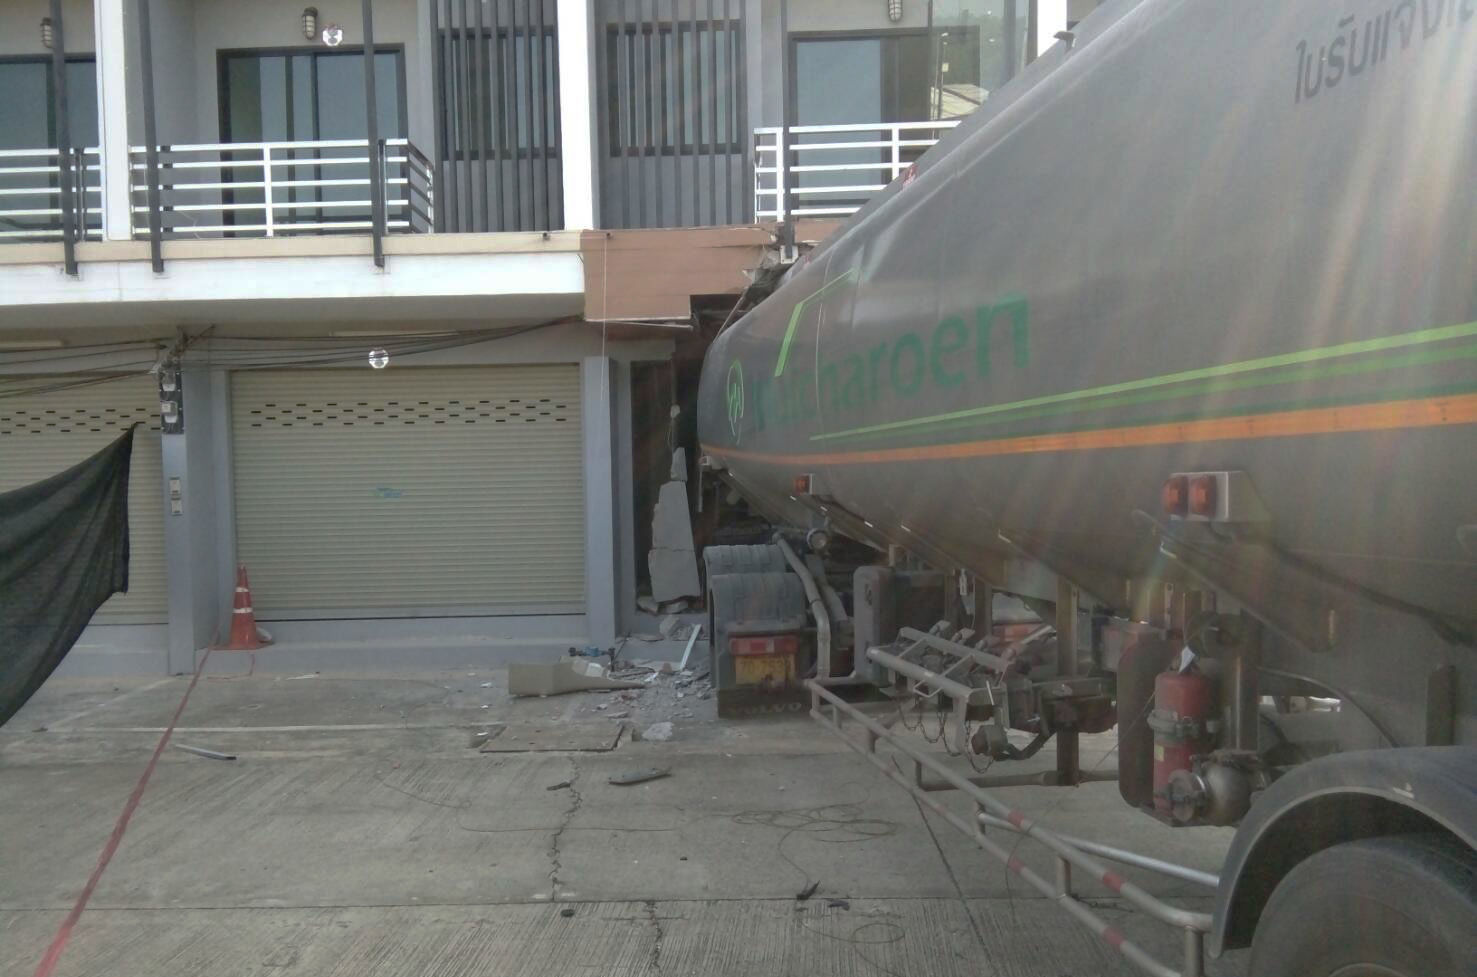 Driver of gas tanker falls asleep, ploughs into building in Chiang Rai | News by The Thaiger